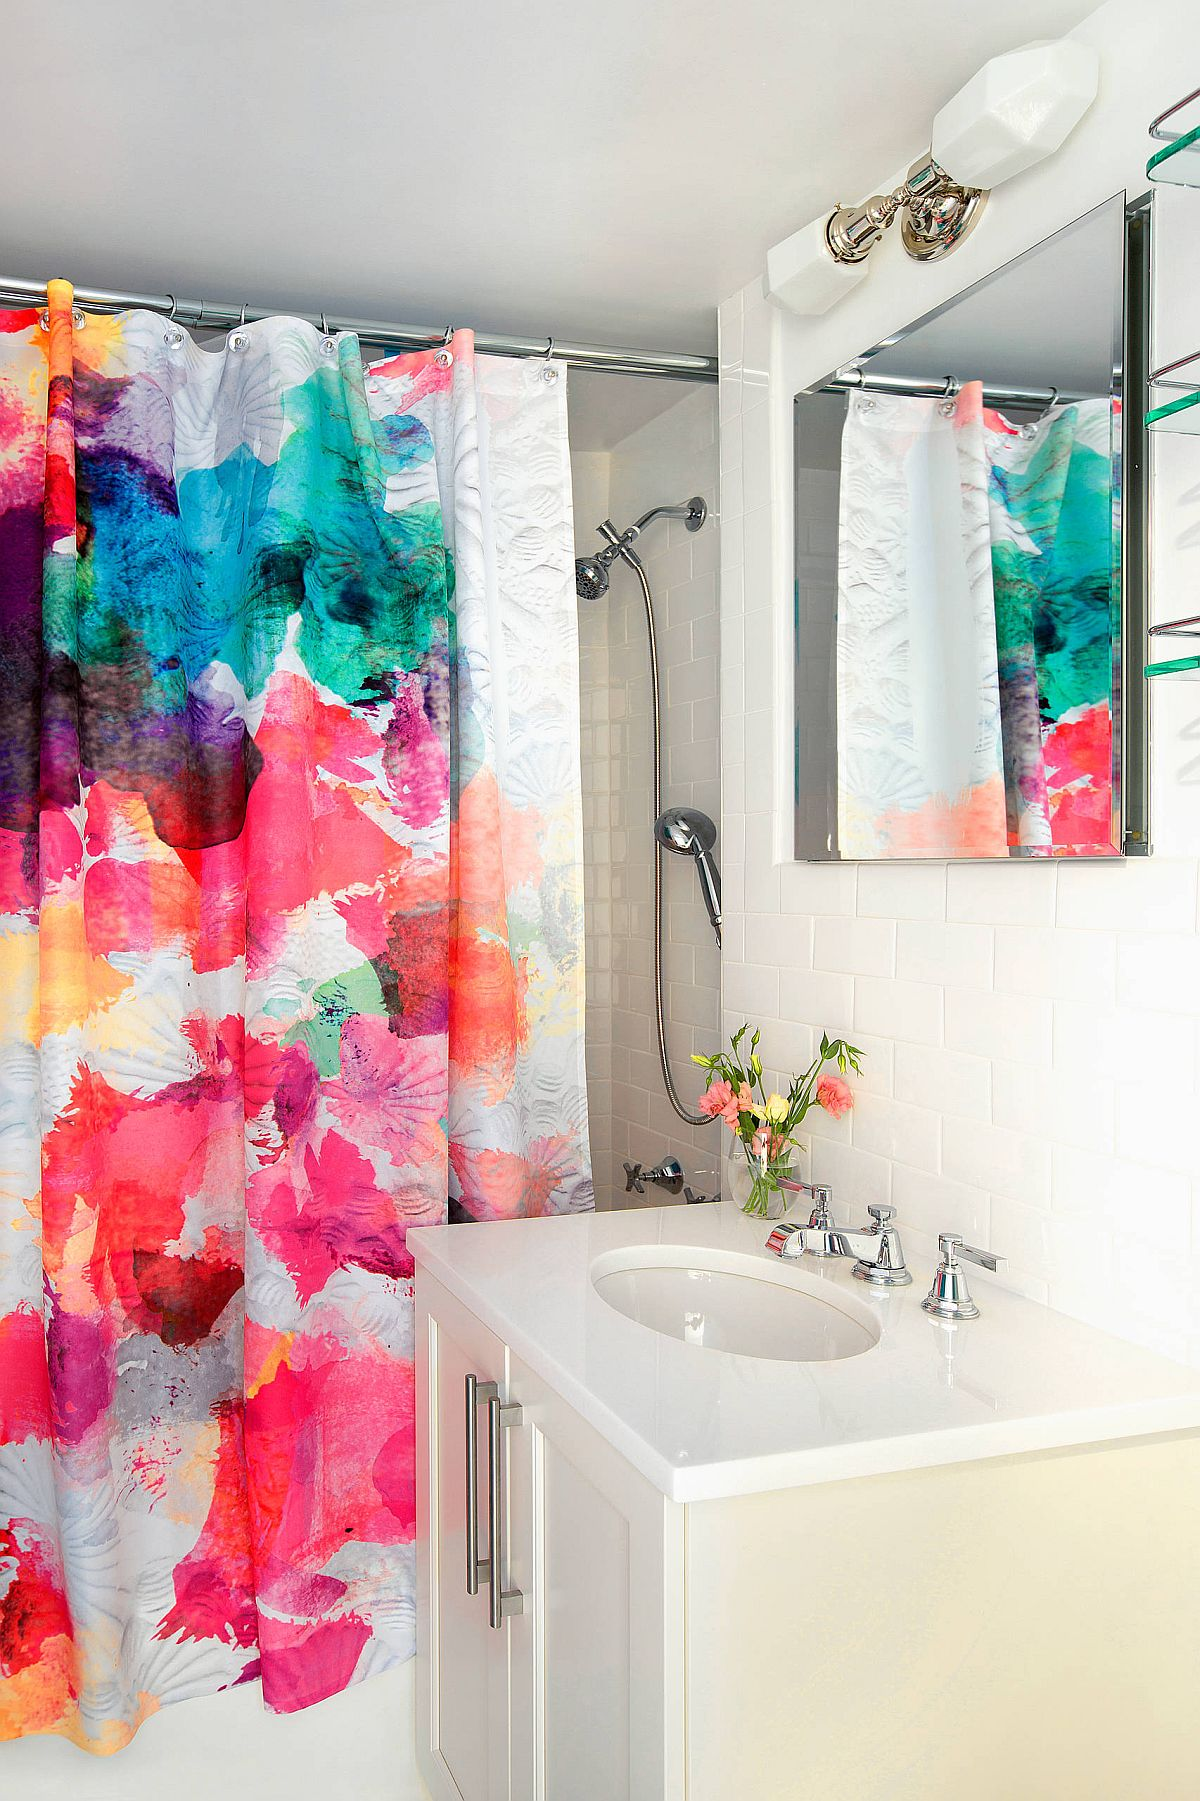 Shower curtains bring splashes of pink and purple into this modern, neutral bathroom